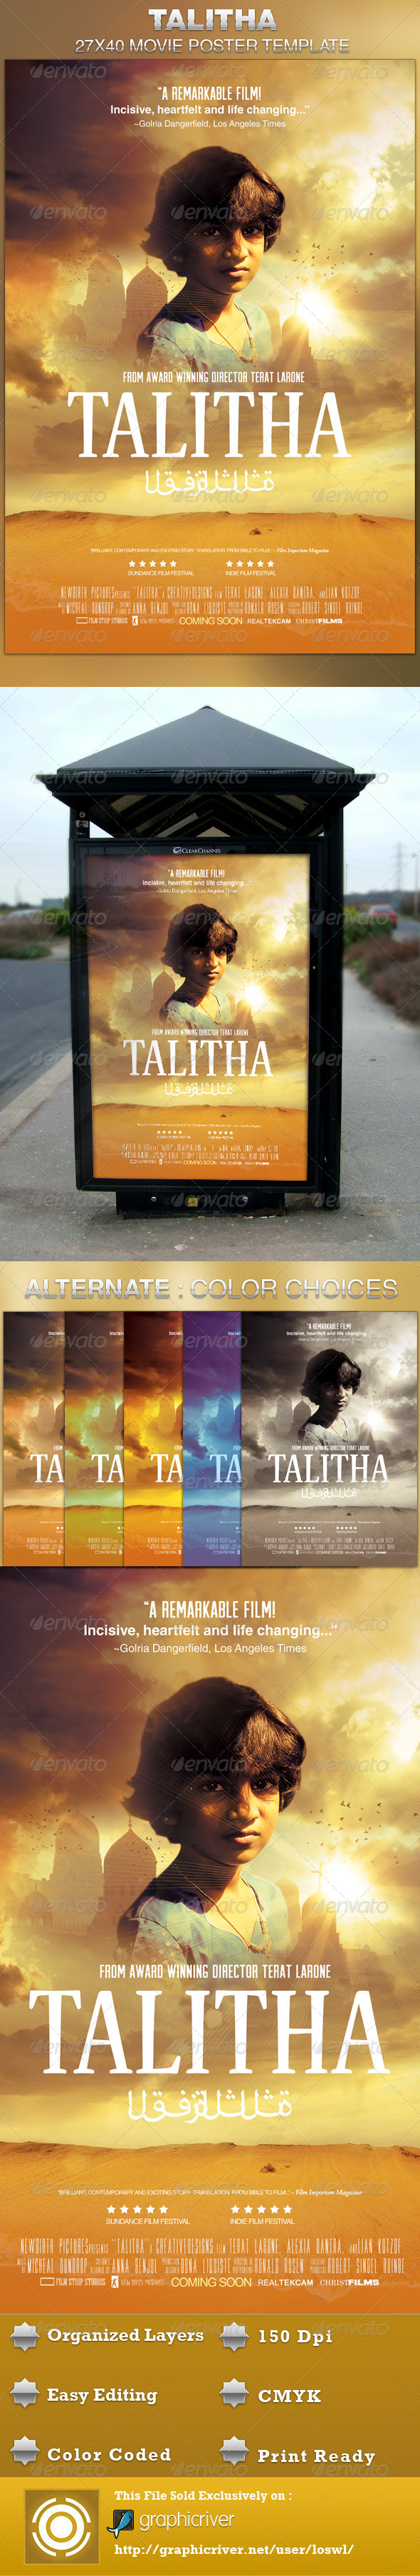 Talitha Movie Poster Template - Church Flyers